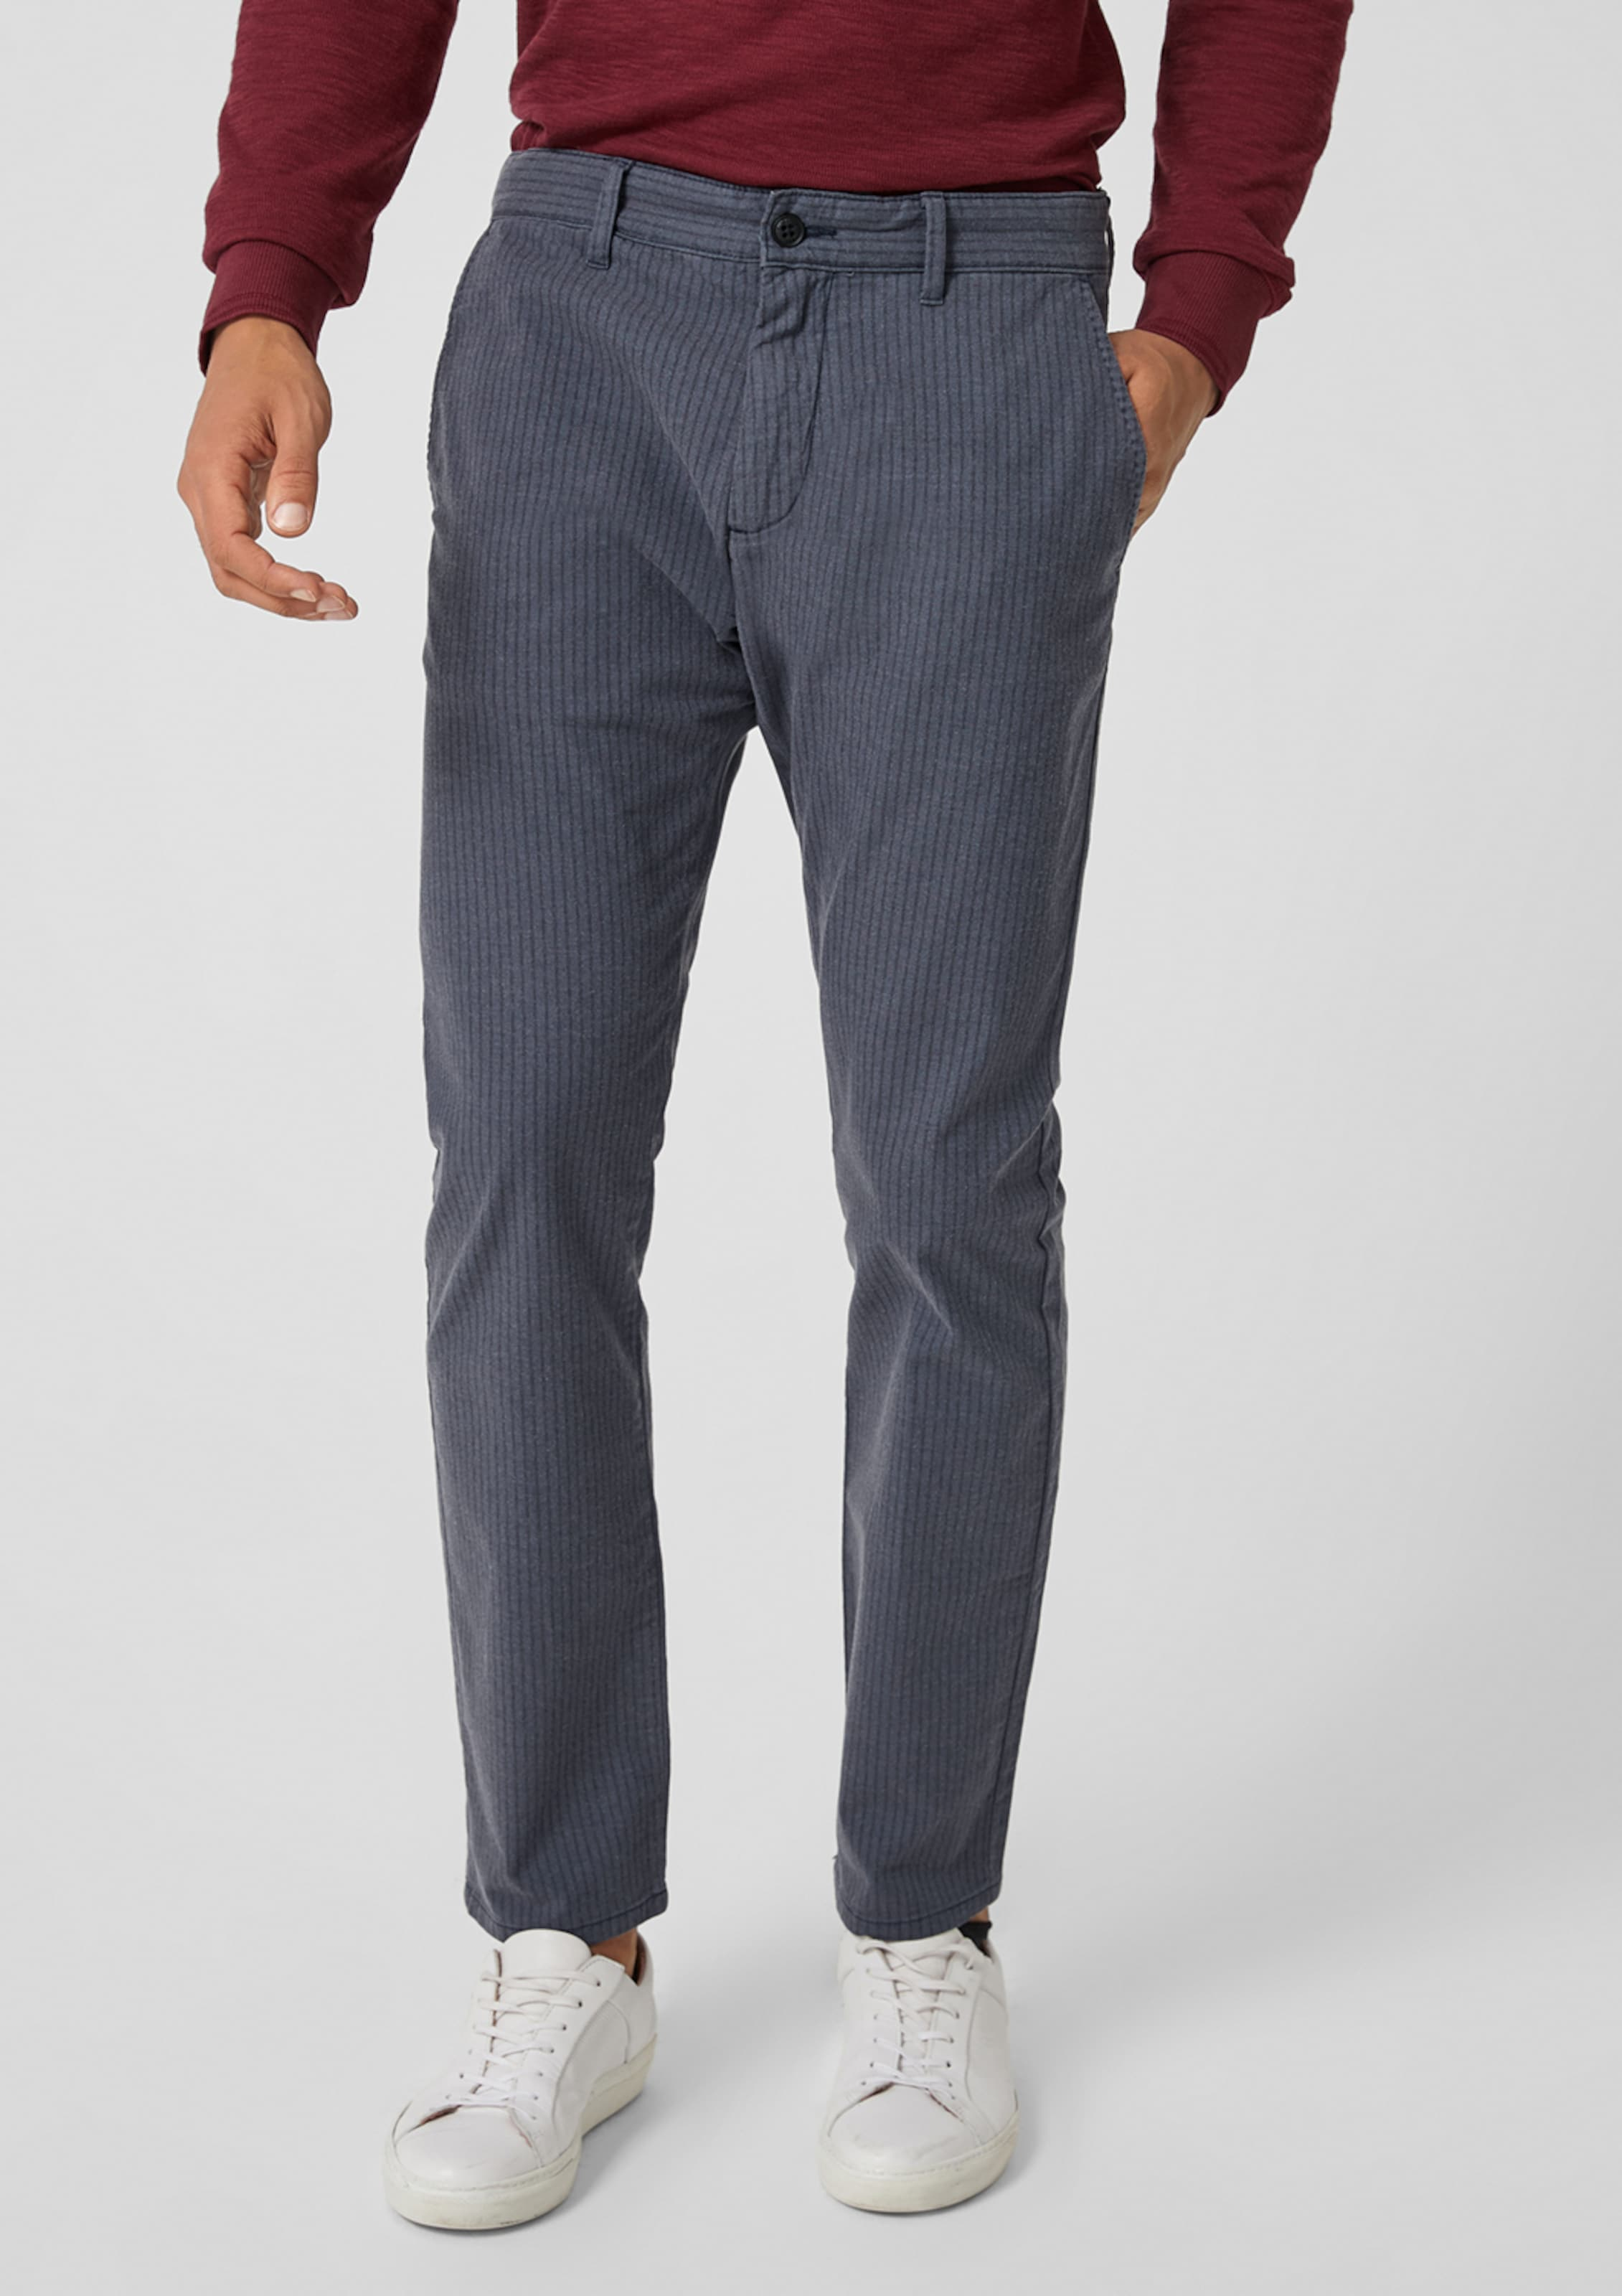 Taubenblau oliver In oliver Chino Taubenblau Chino S In S S oliver H2YWD9IE